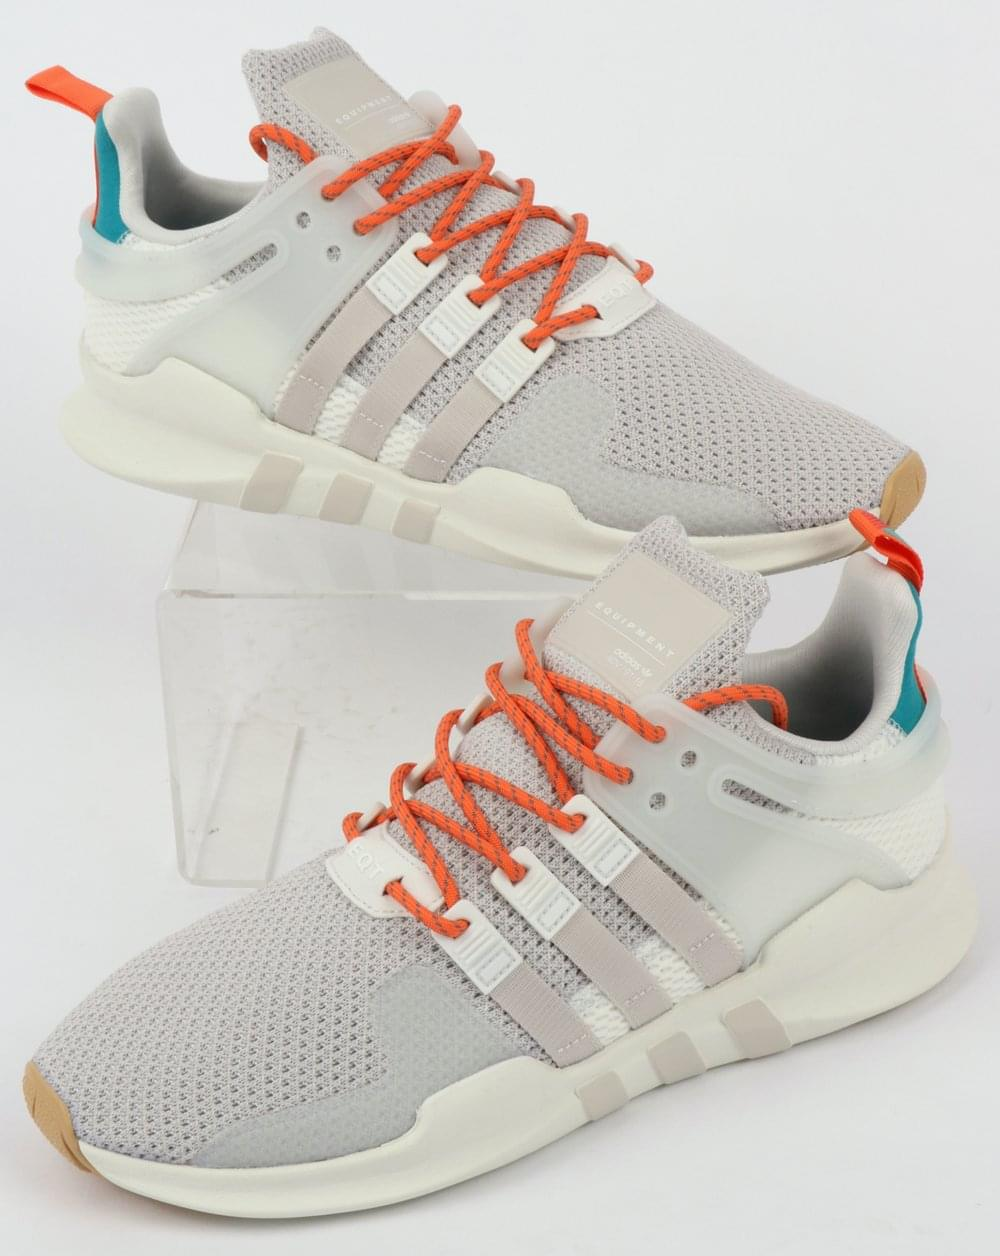 new style 6031d 216fd Adidas EQT Support Adv Summer Trainers White/Chalk